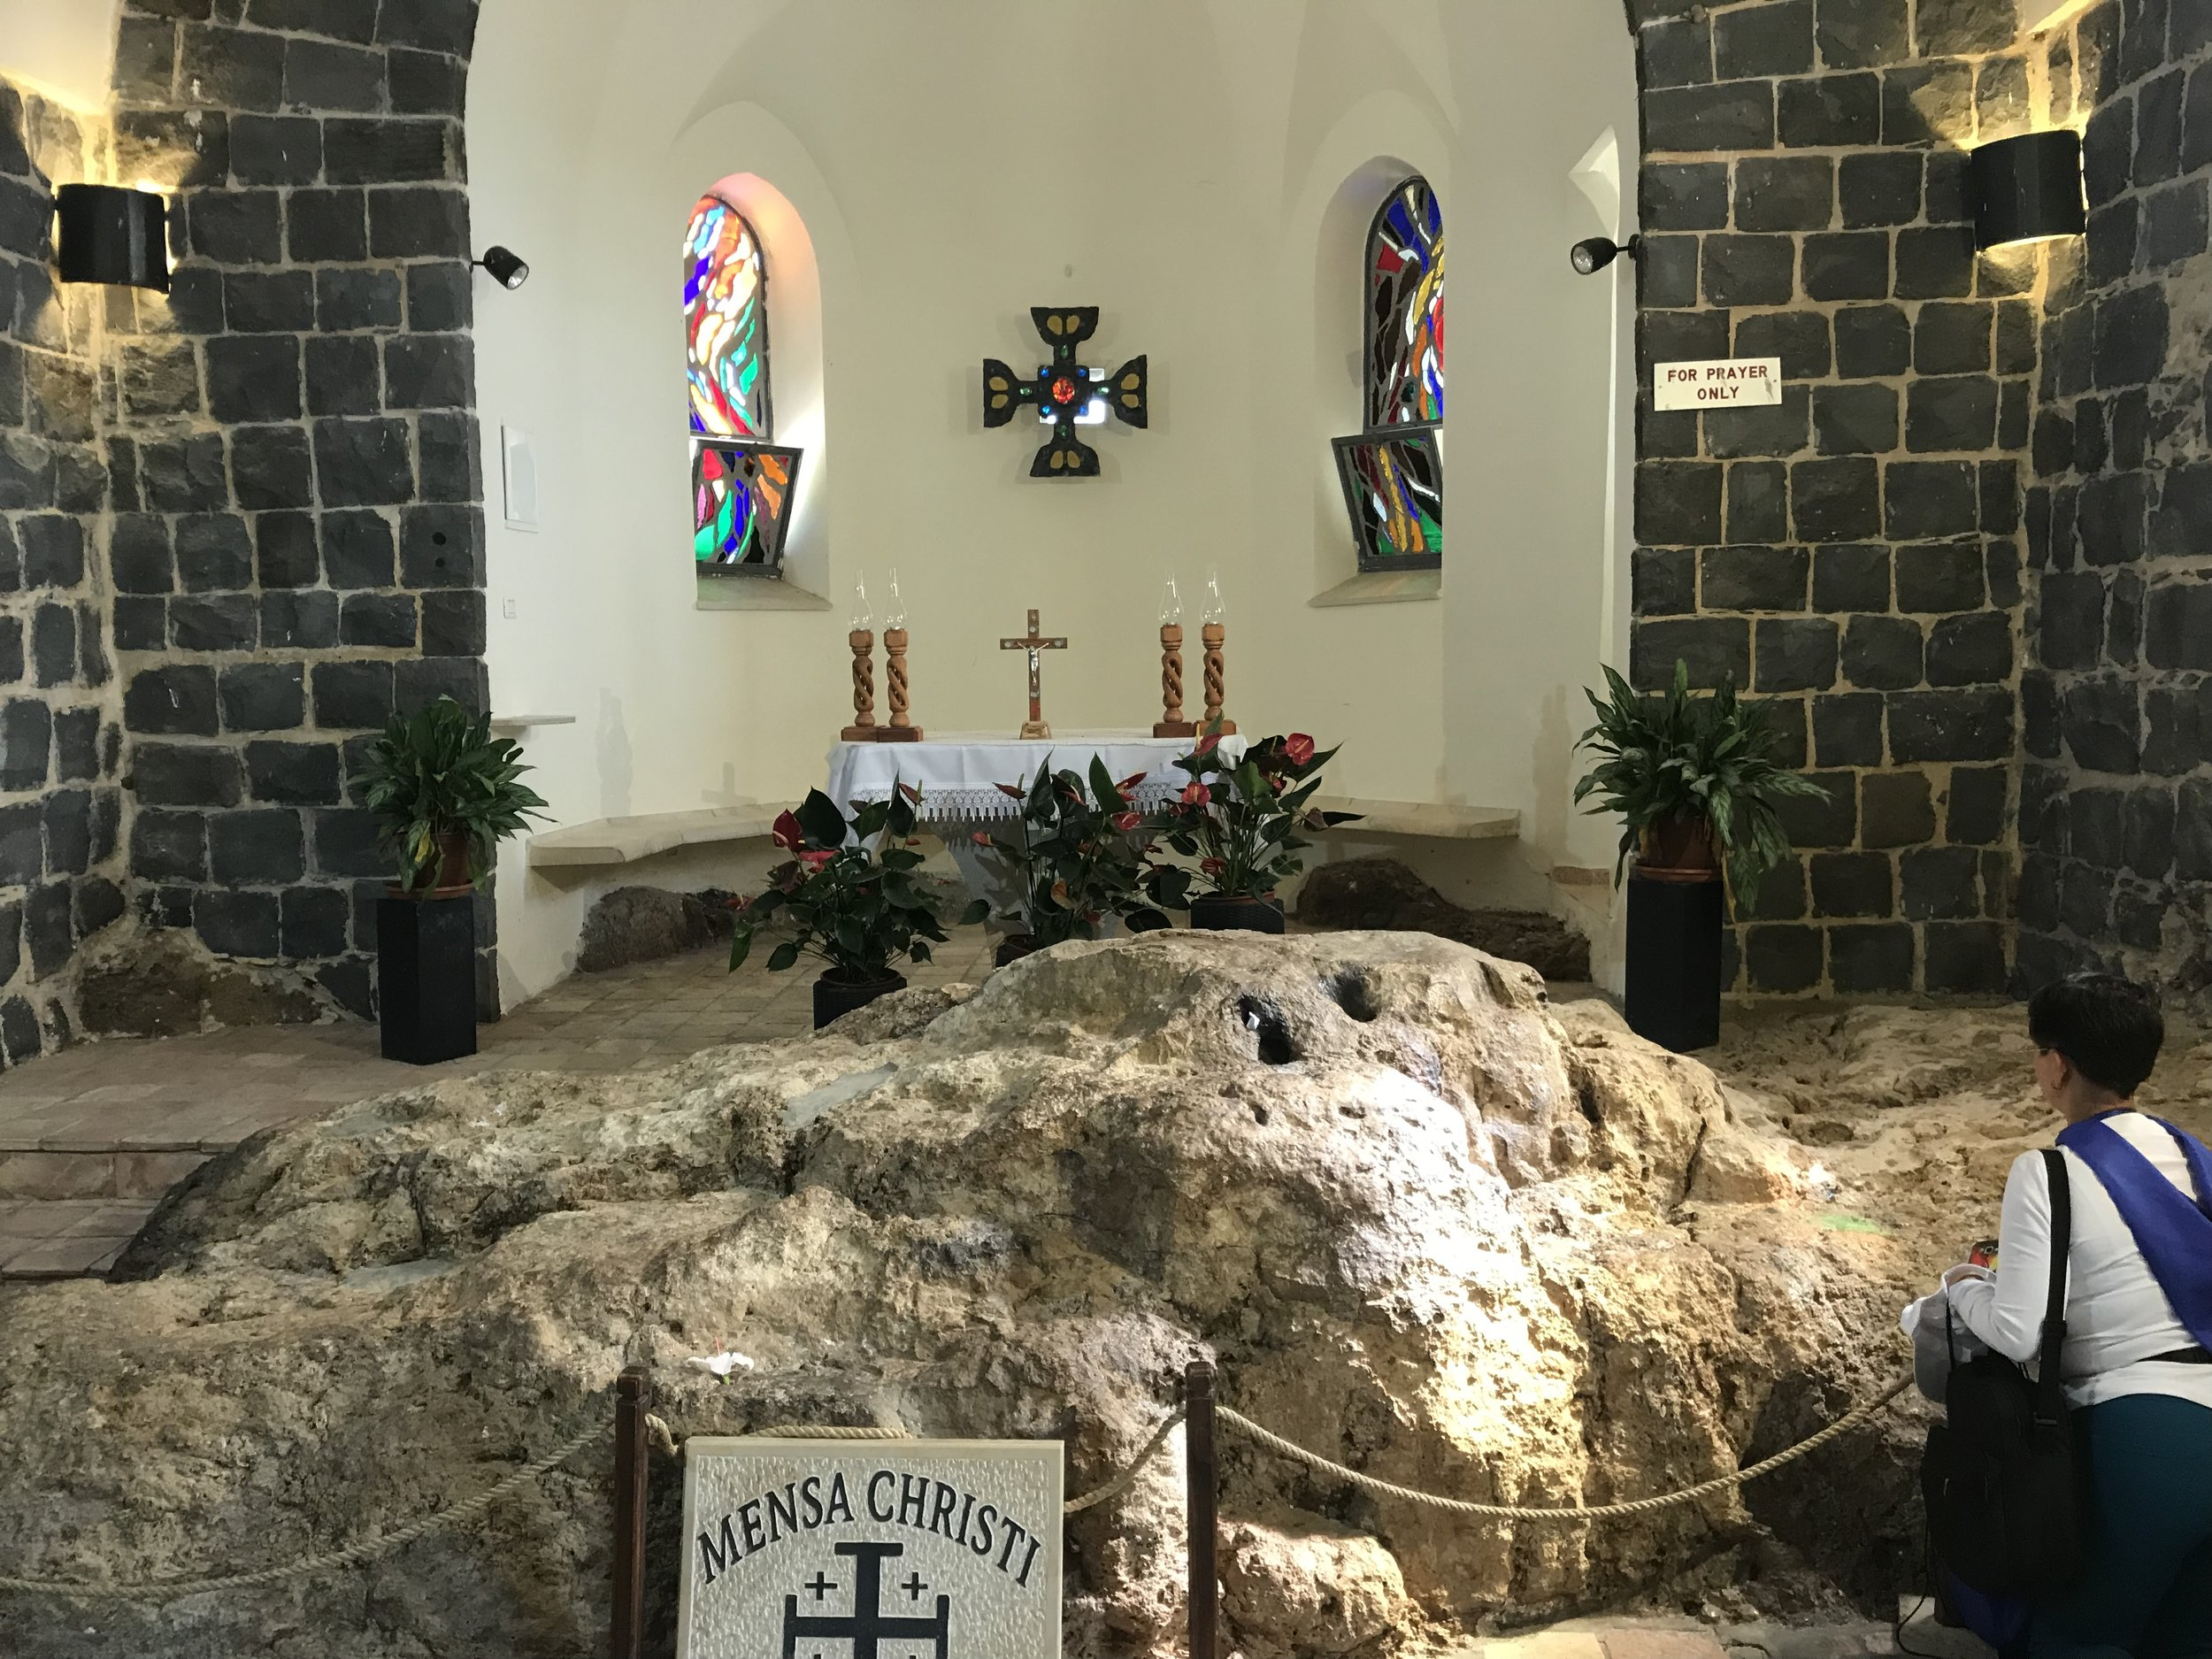 The rock where Jesus prepared the fish for the Disciples